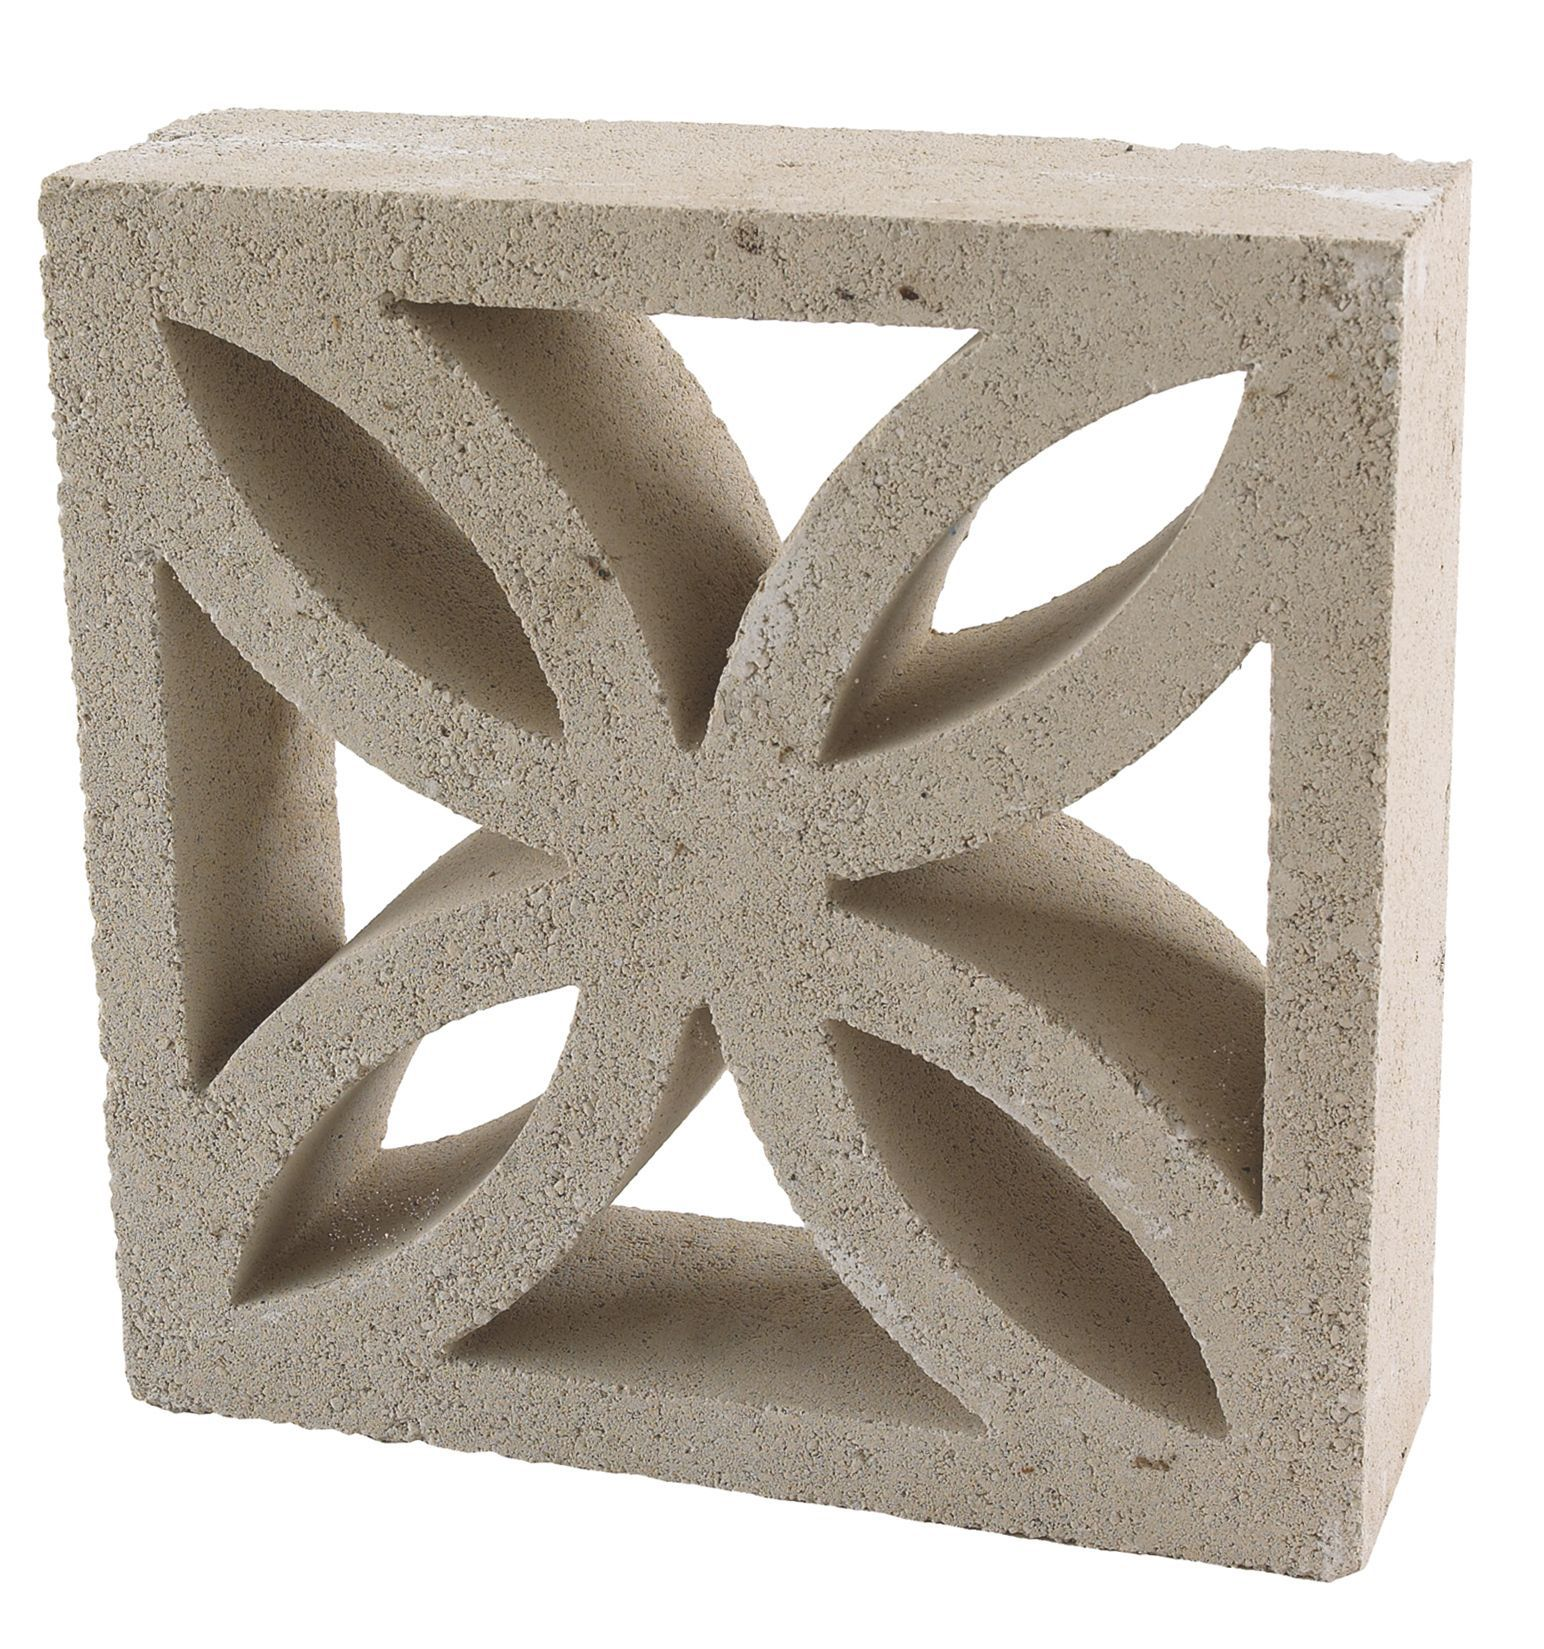 Leaf Block Off White Leaf Block L 290mm W 290mm T 90mm